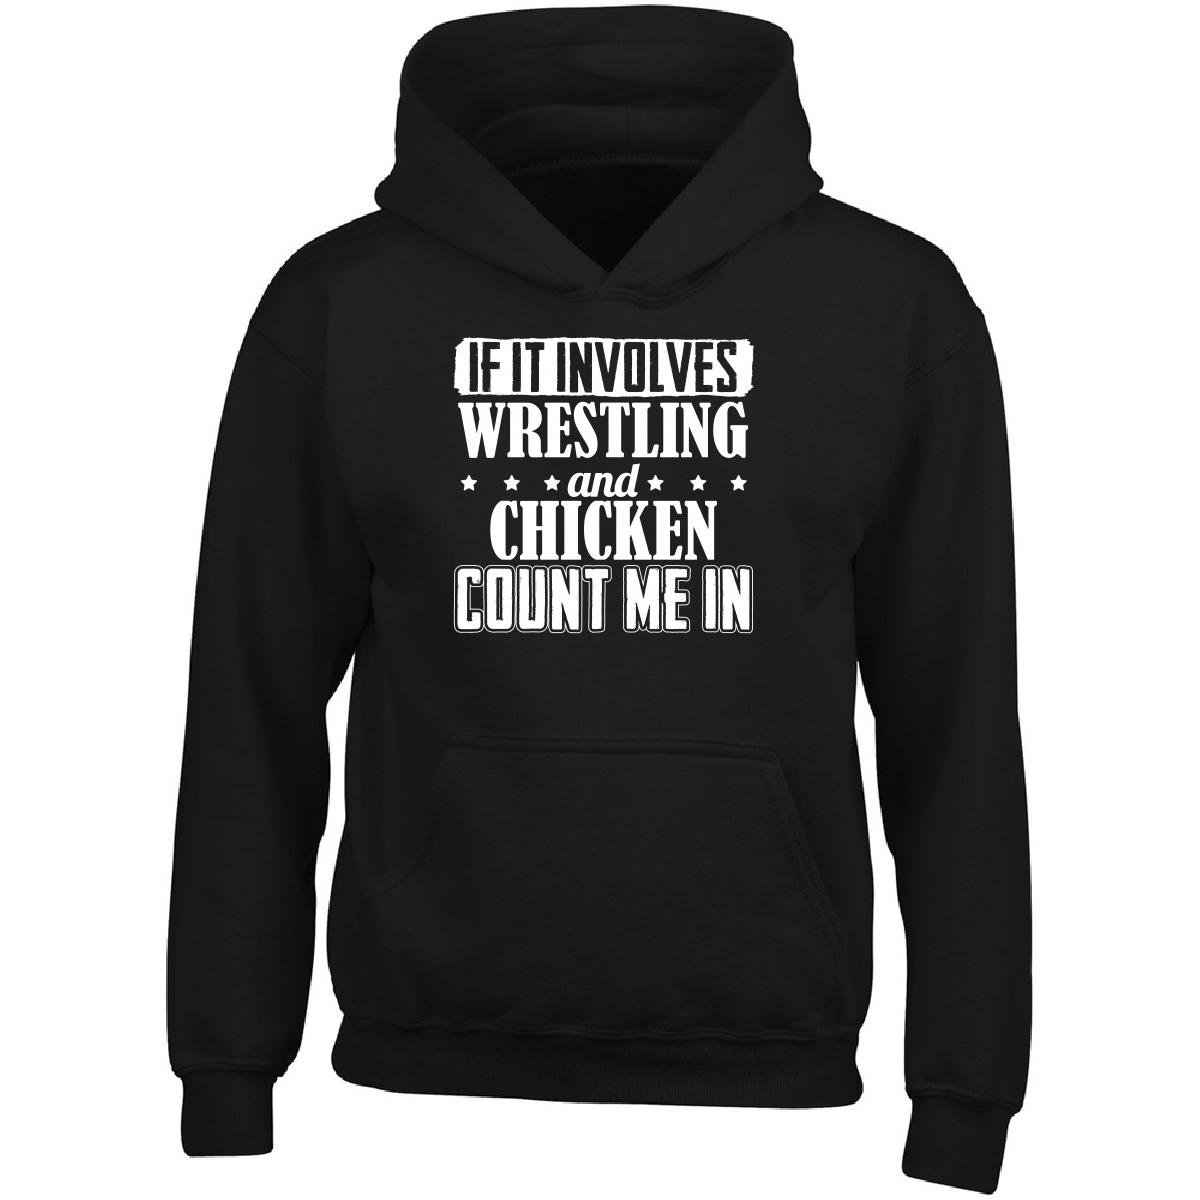 If It Involves Wrestling And Chicken Count Me In - Adult Hoodie L Black